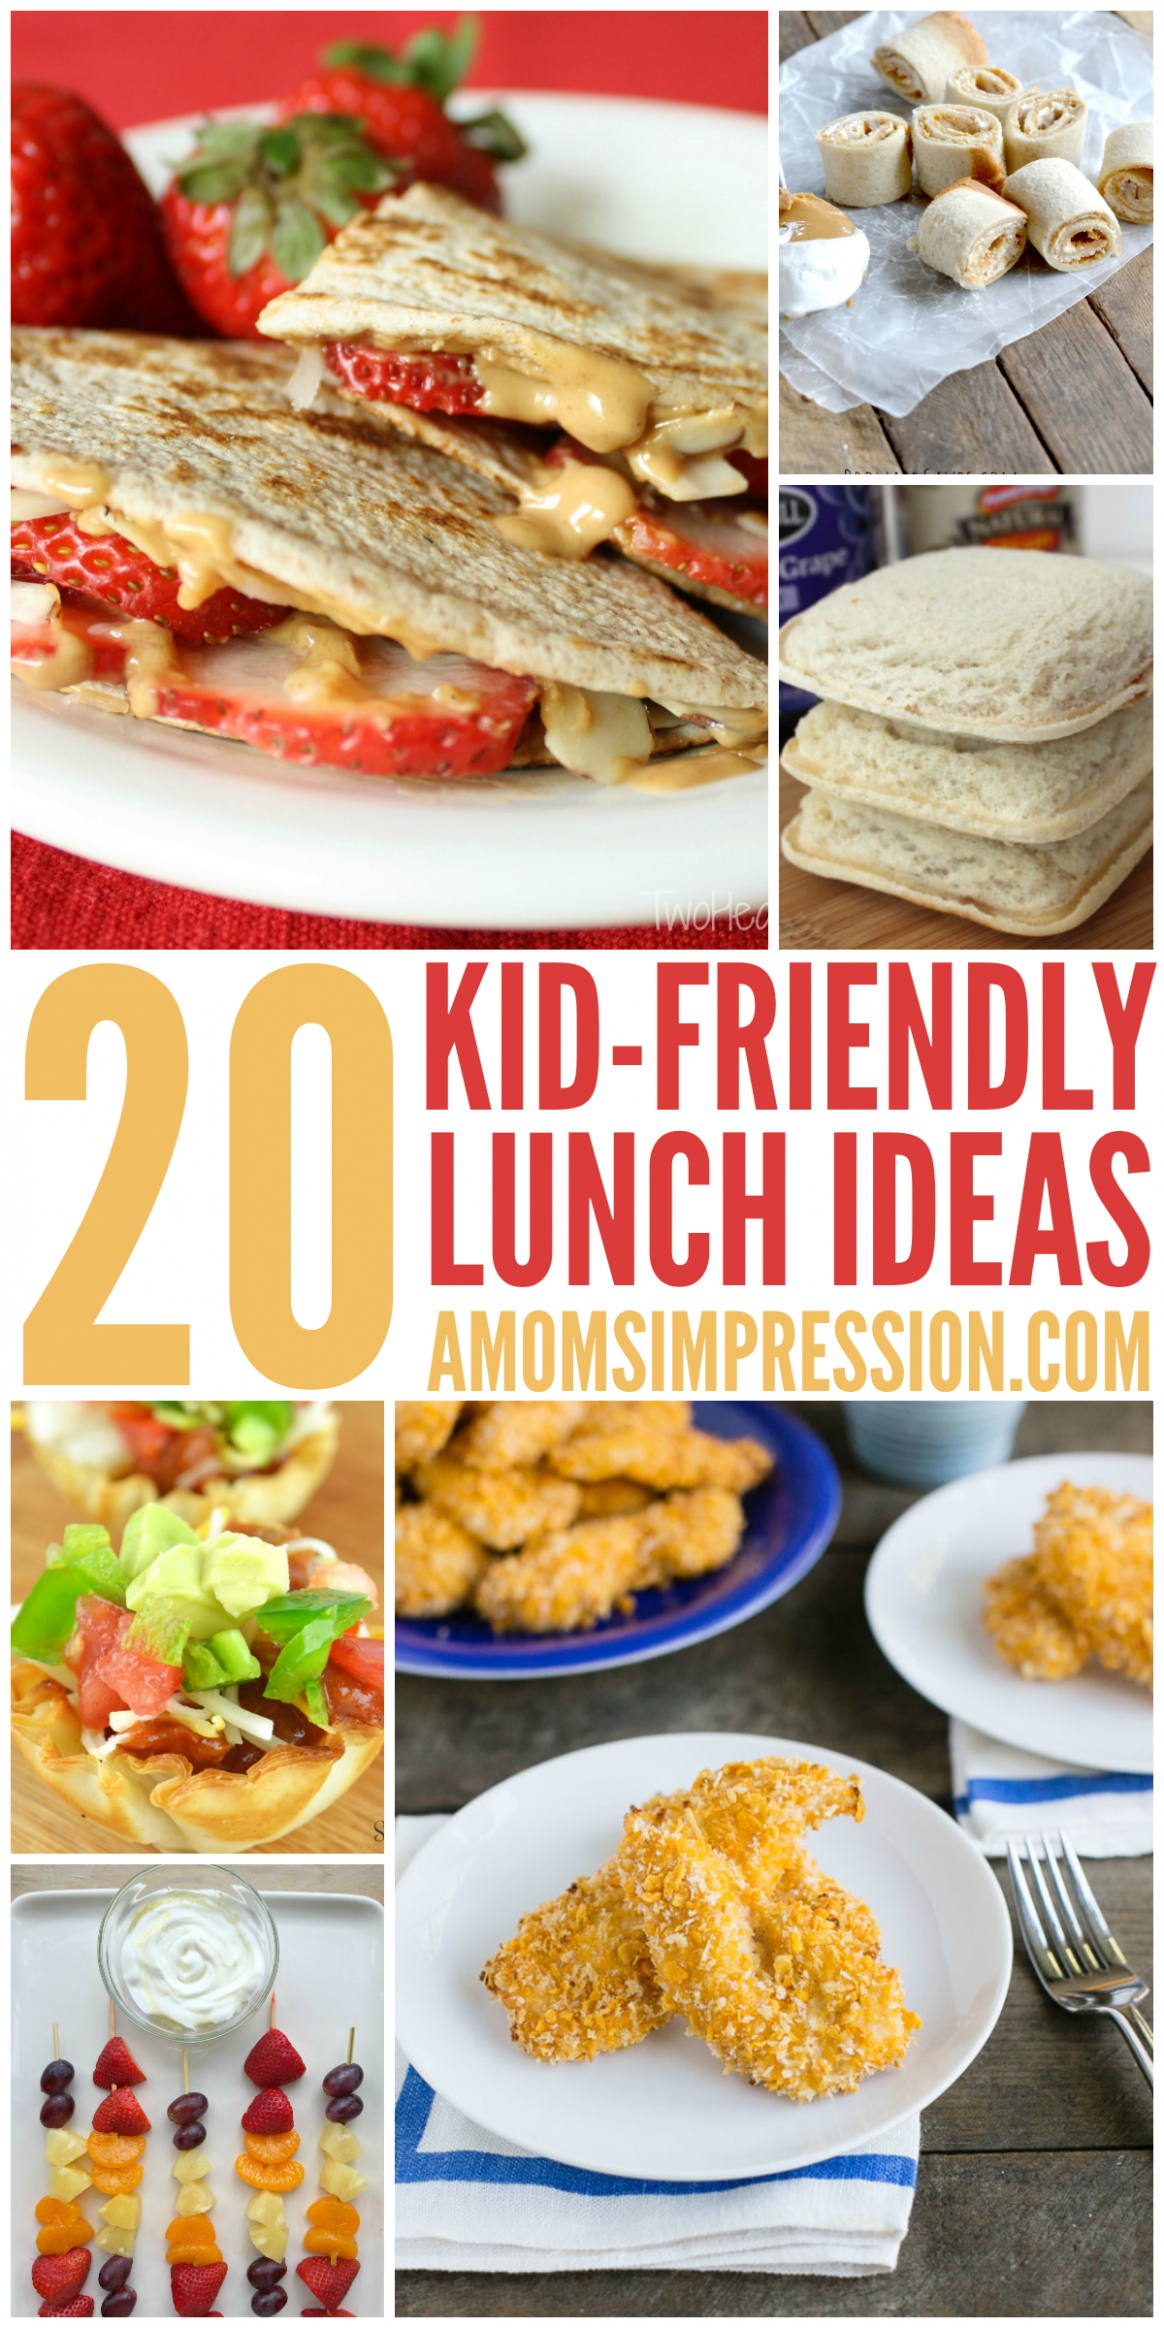 11 kid friendly lunches - a healthy recipe ideas for Back to ...